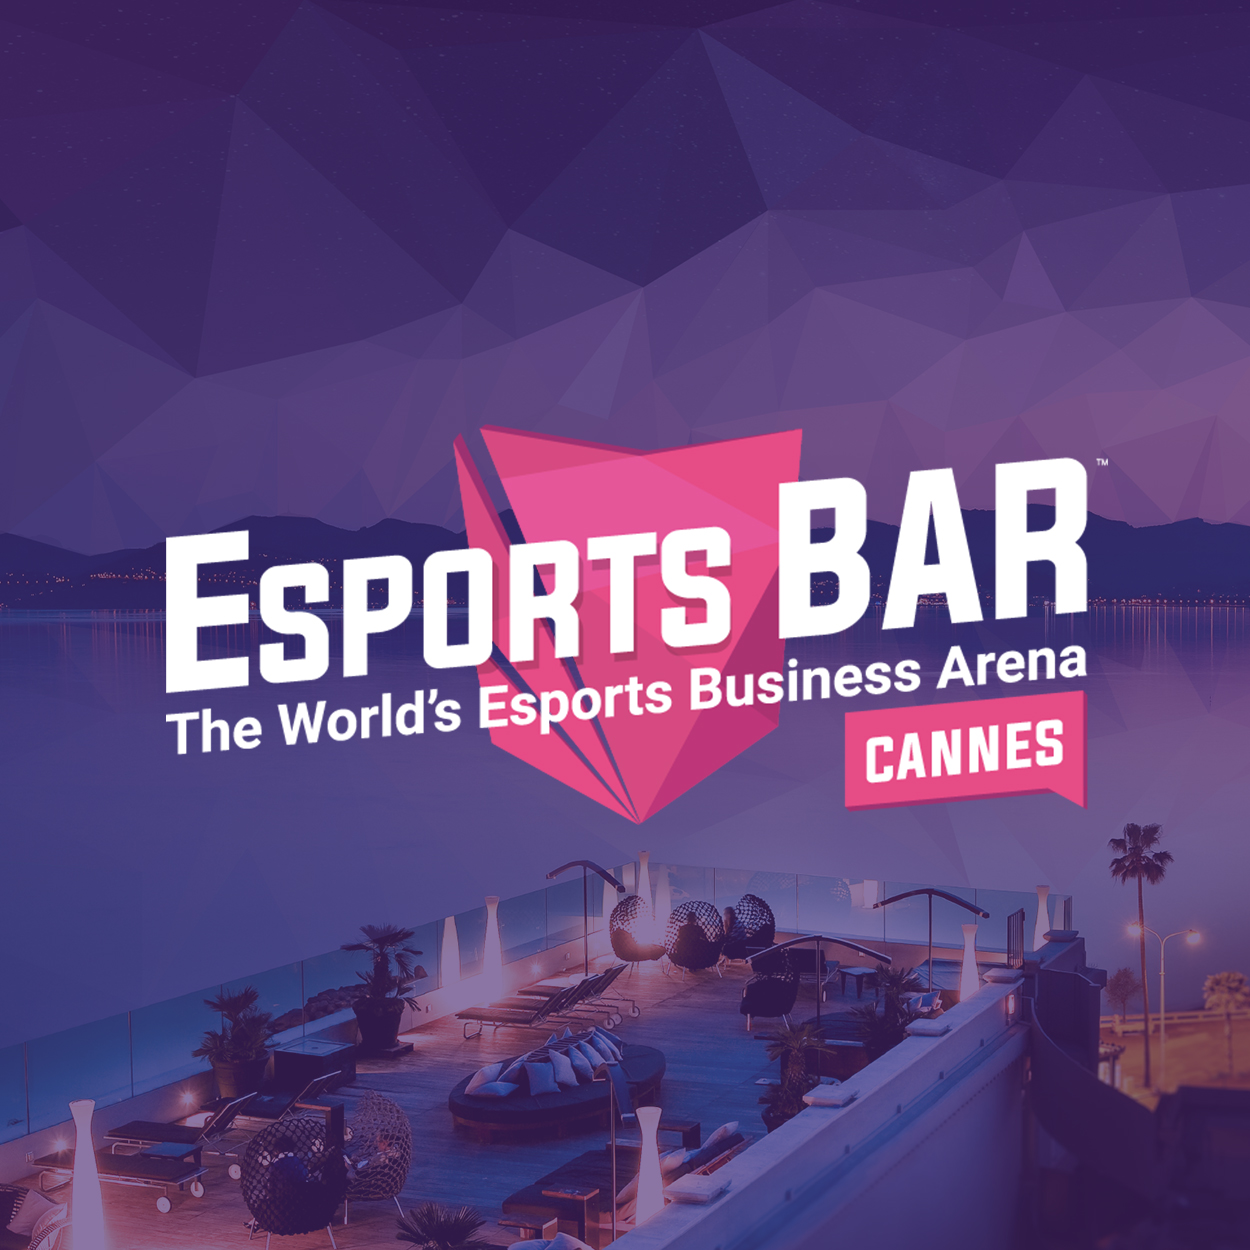 Esports BAR' Lead marketing Agency